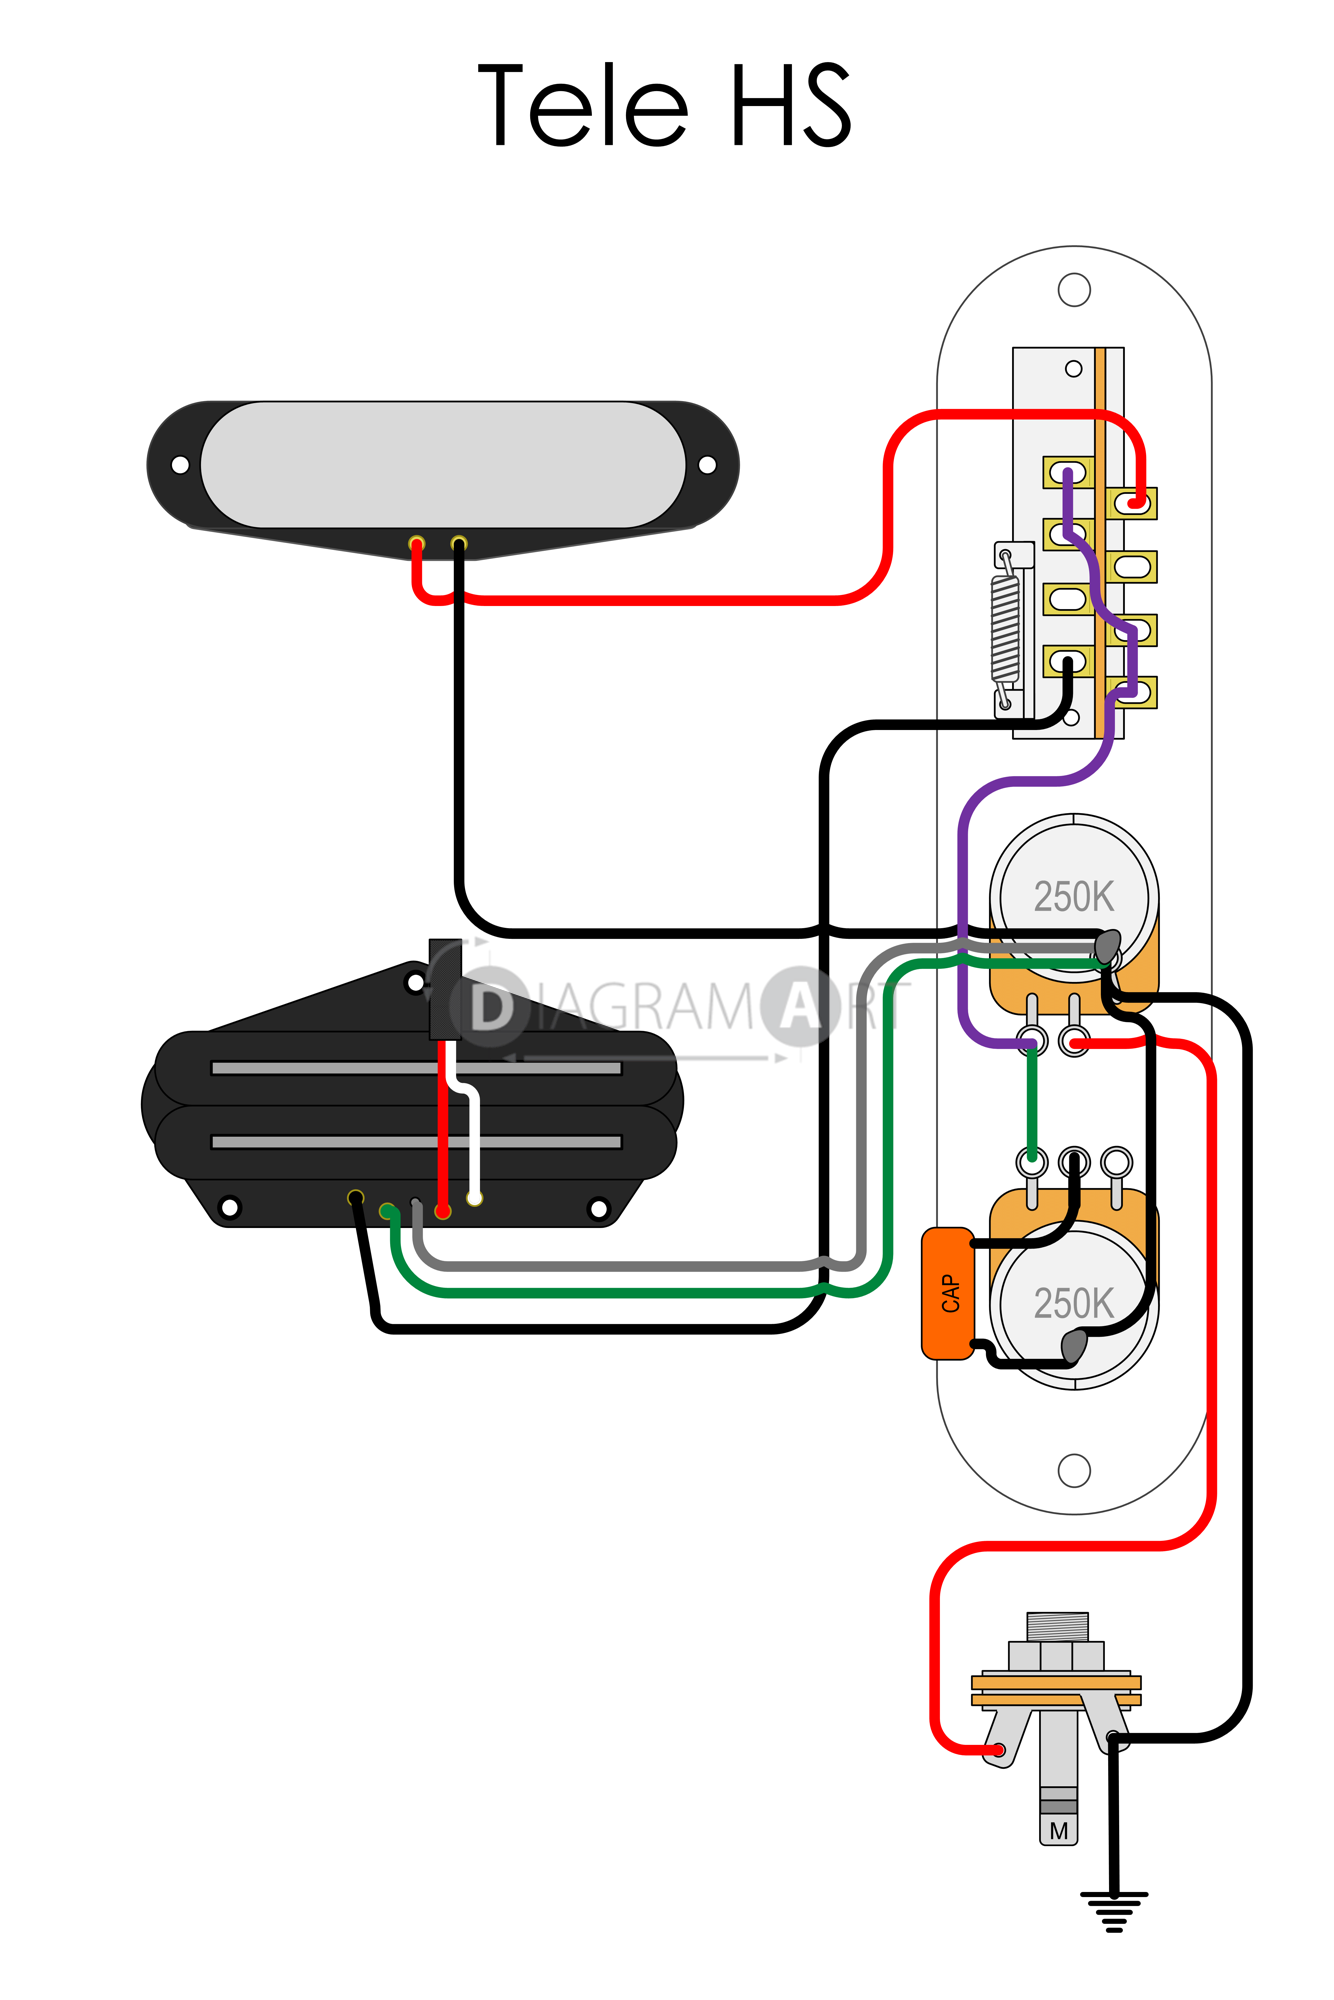 Telecaster Electric Guitar Wiring Diagrams Diagram Will Be Fender American Standard Schematic Tele Hs Circuit Diagramart Rh Com Switch